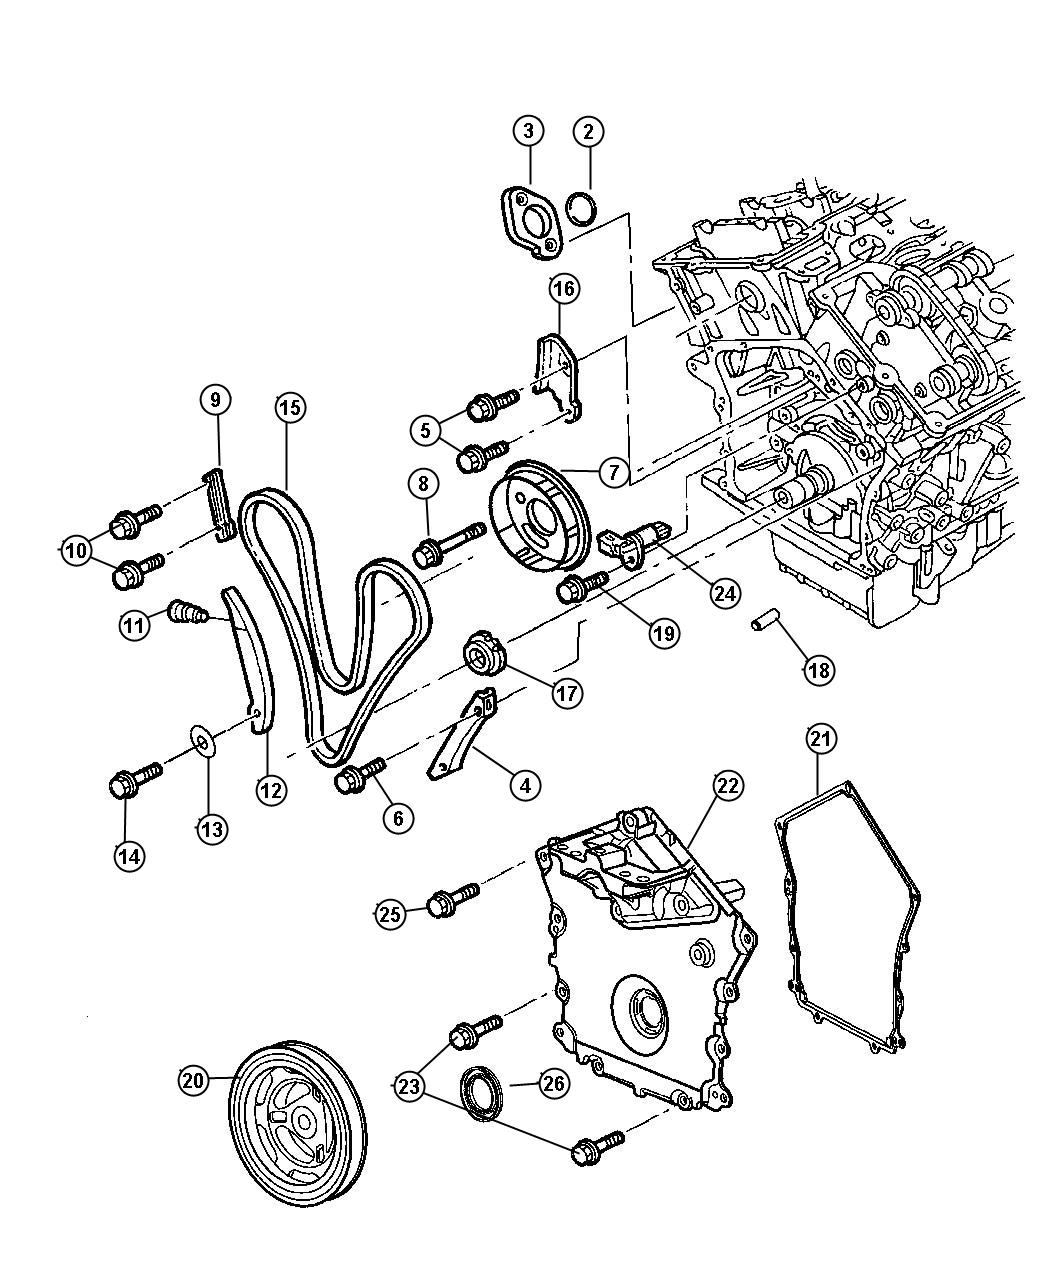 2004 Chrysler Sebring 2 7 Engine Diagram